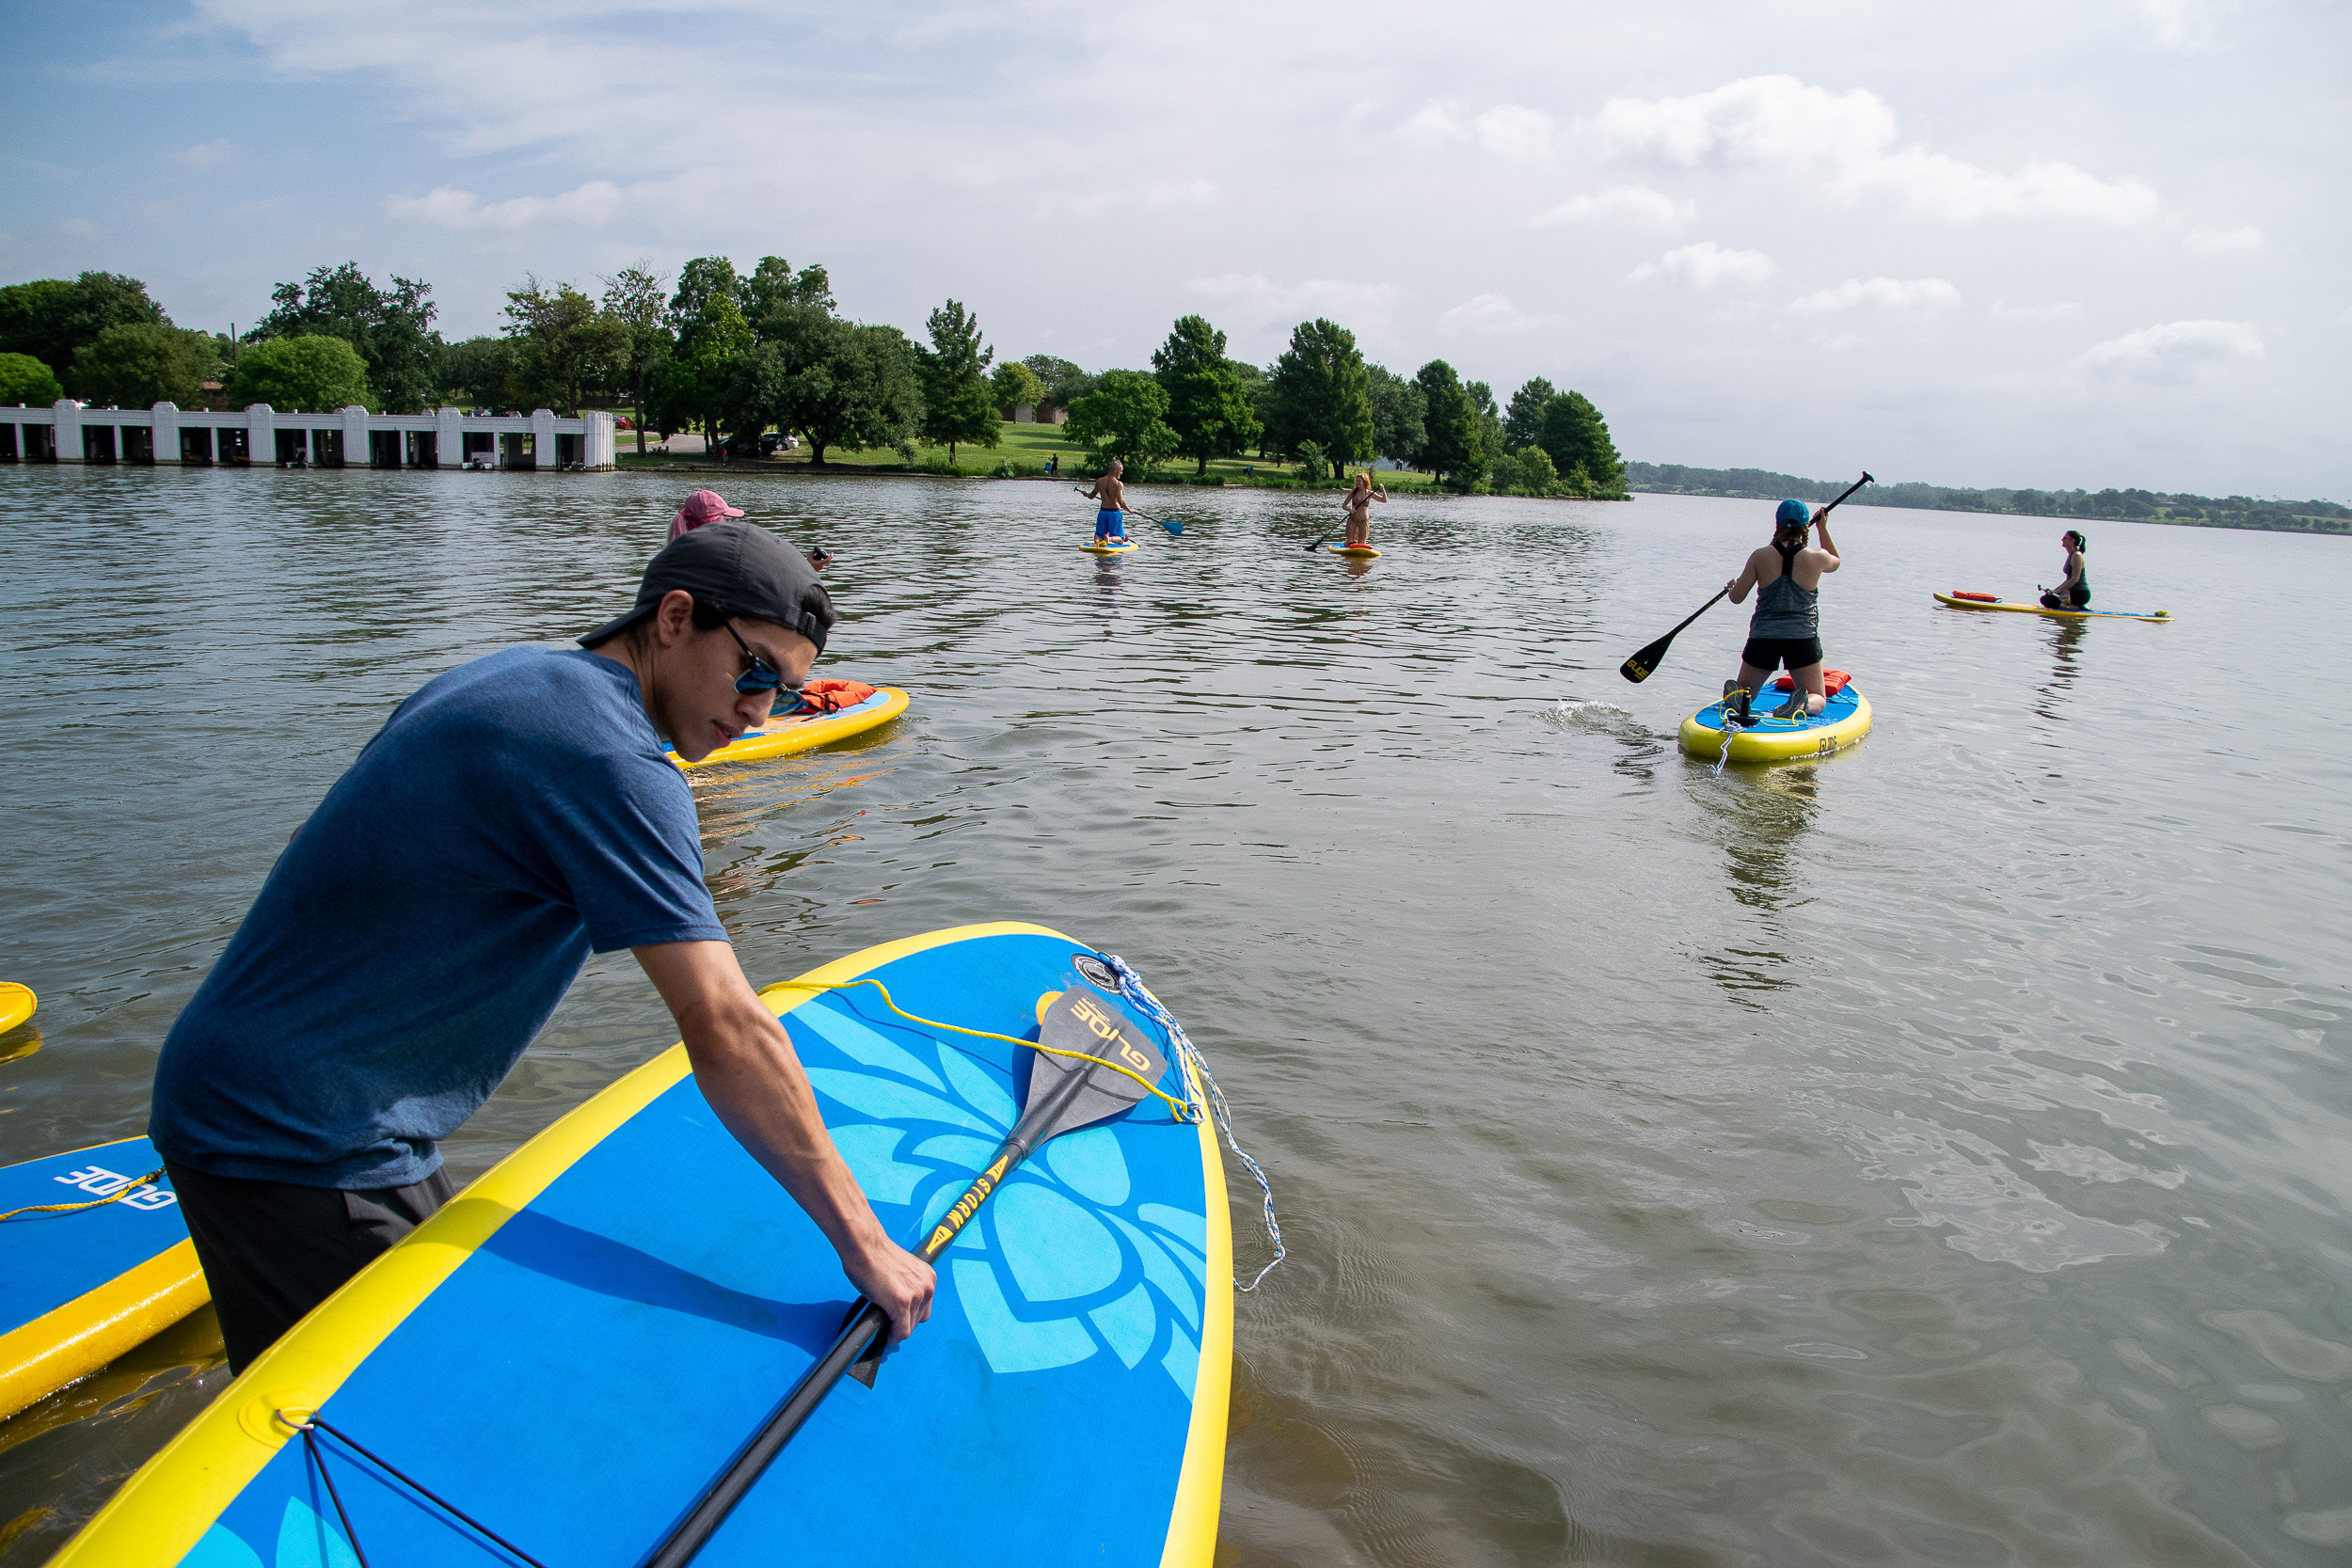 Yogis begin launching into White Rock Lake to practice yoga on paddle boards.